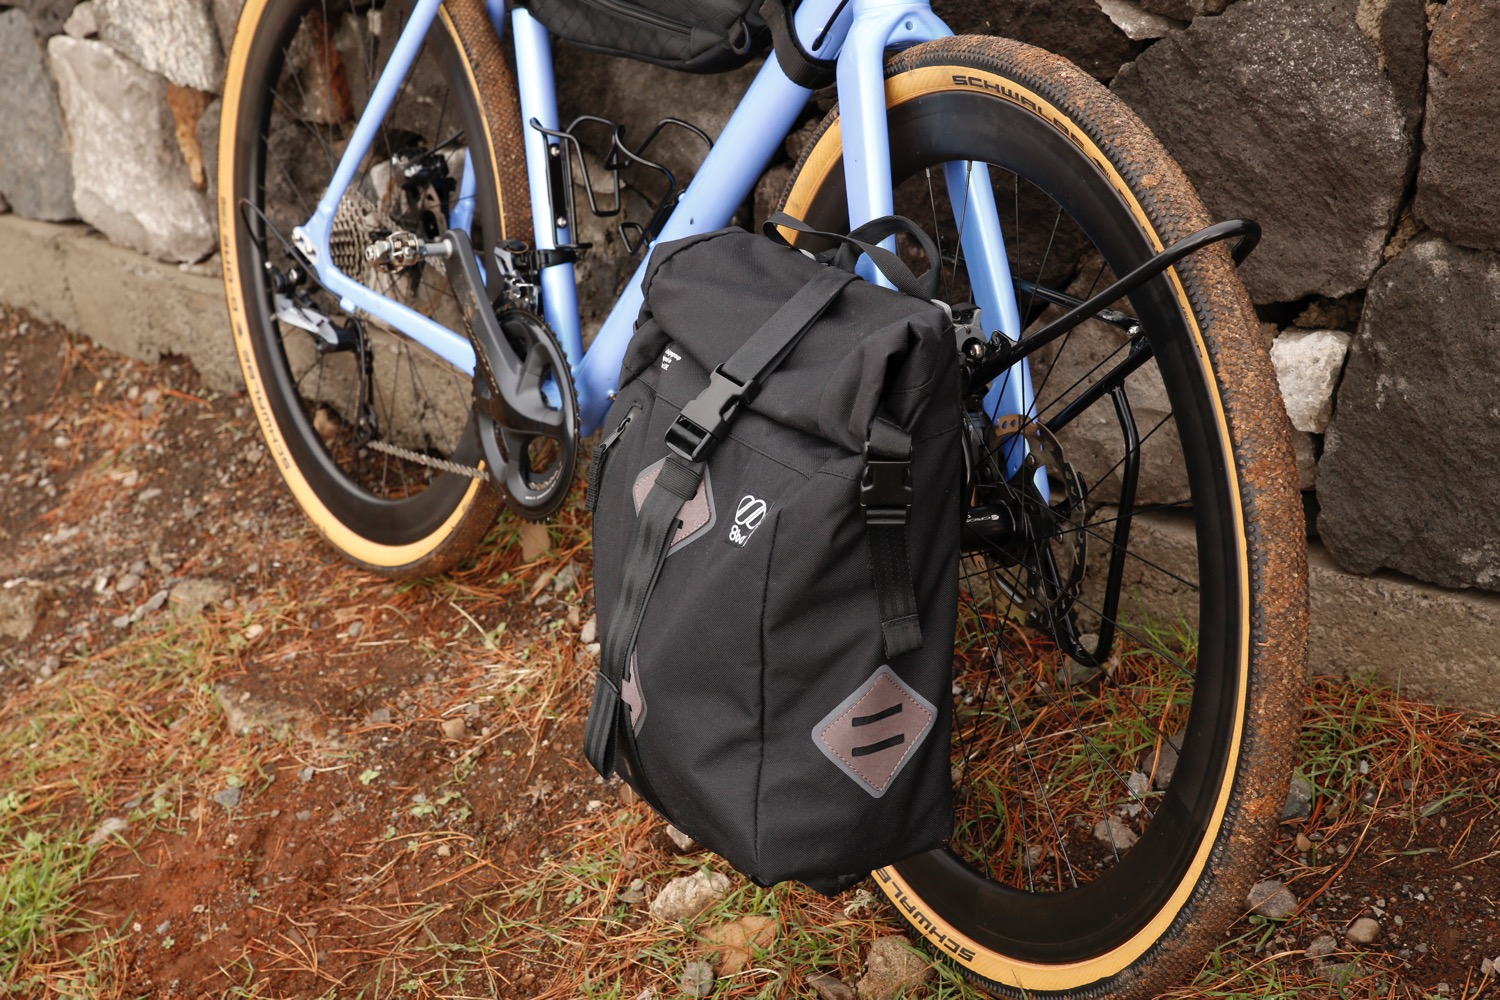 8bar-gran-canaria-032-mitte-pannier-bike-mood-gravel-allride